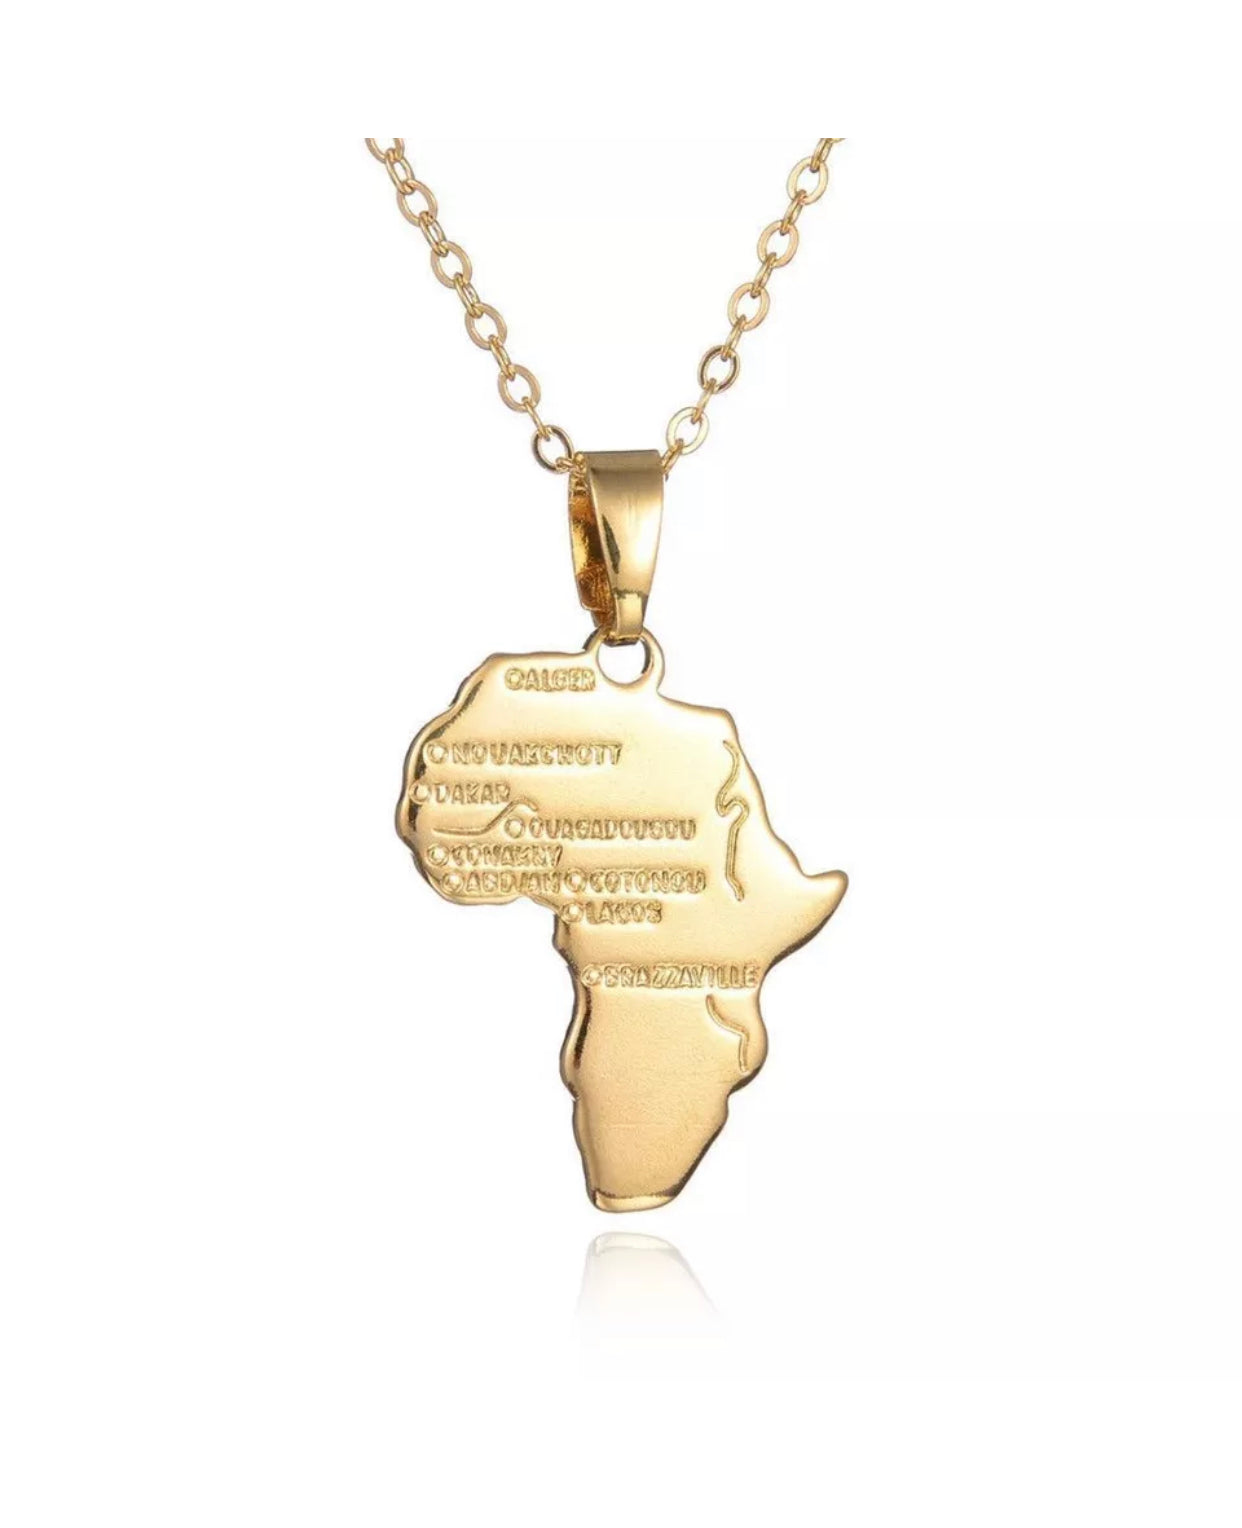 GOLD AFRICA NECKLACE PENDANT CHAIN - Afro Fusion Apparel African Prints Ankara